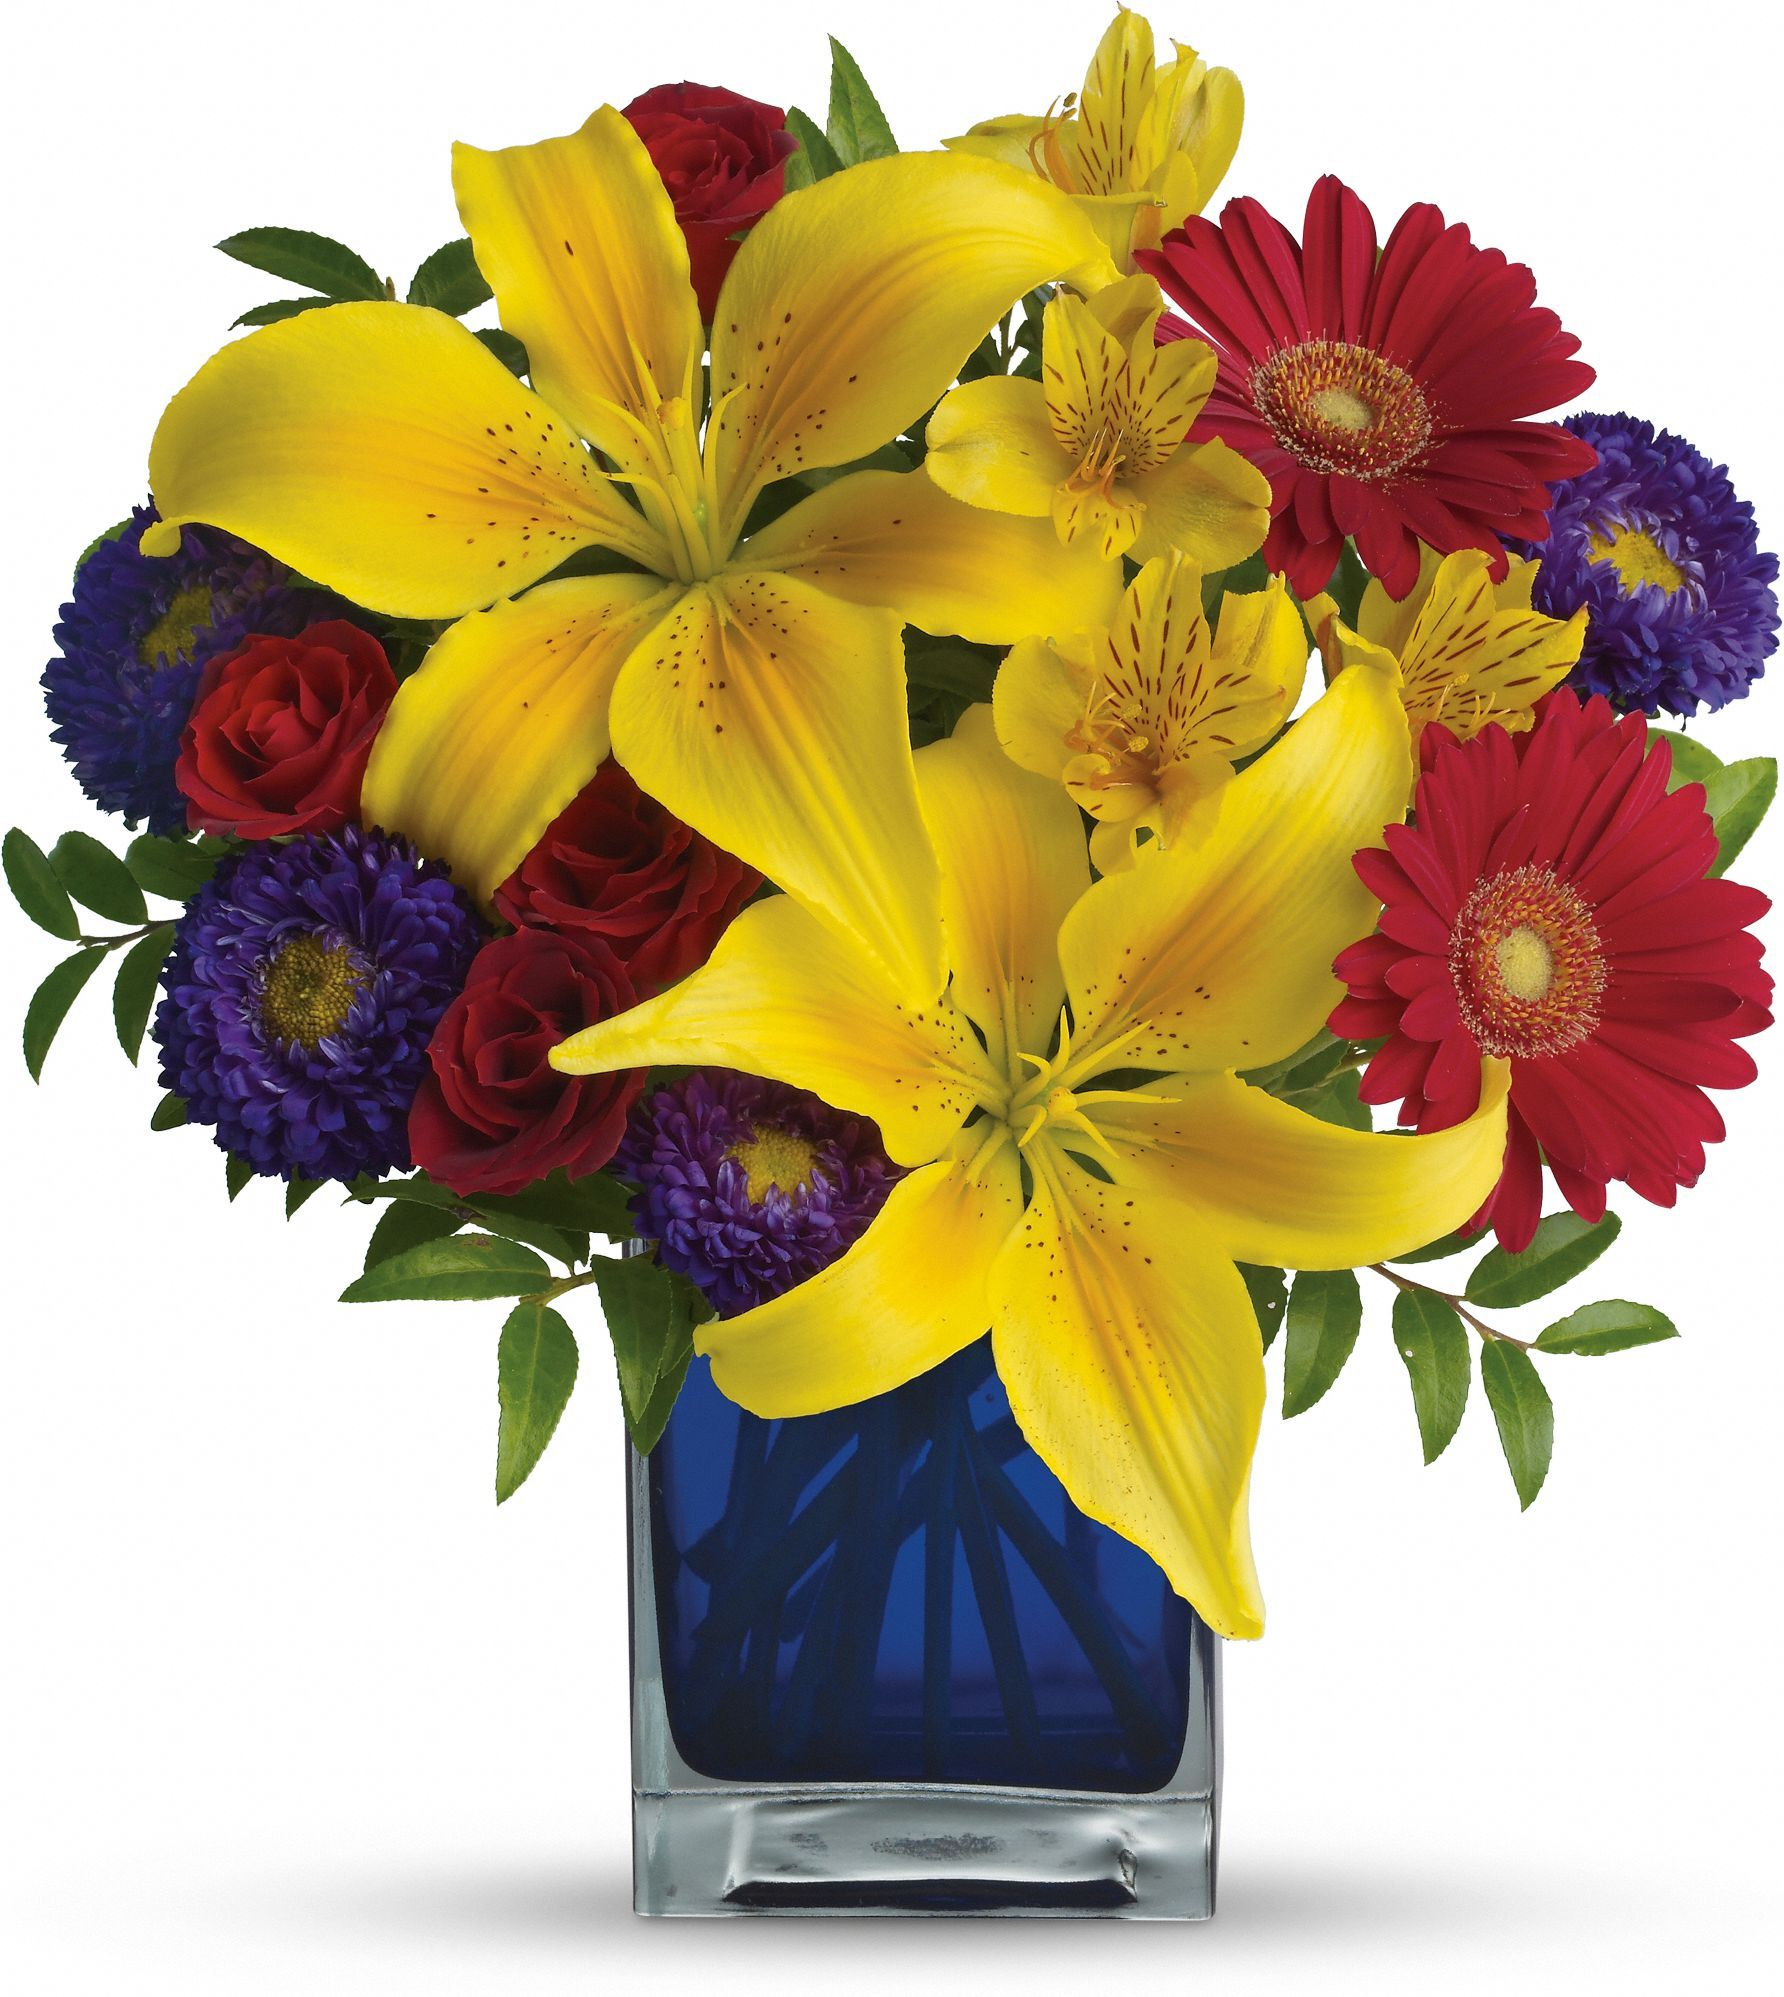 Teleflora's Blue Caribbean Save 25% On This Bouquet And